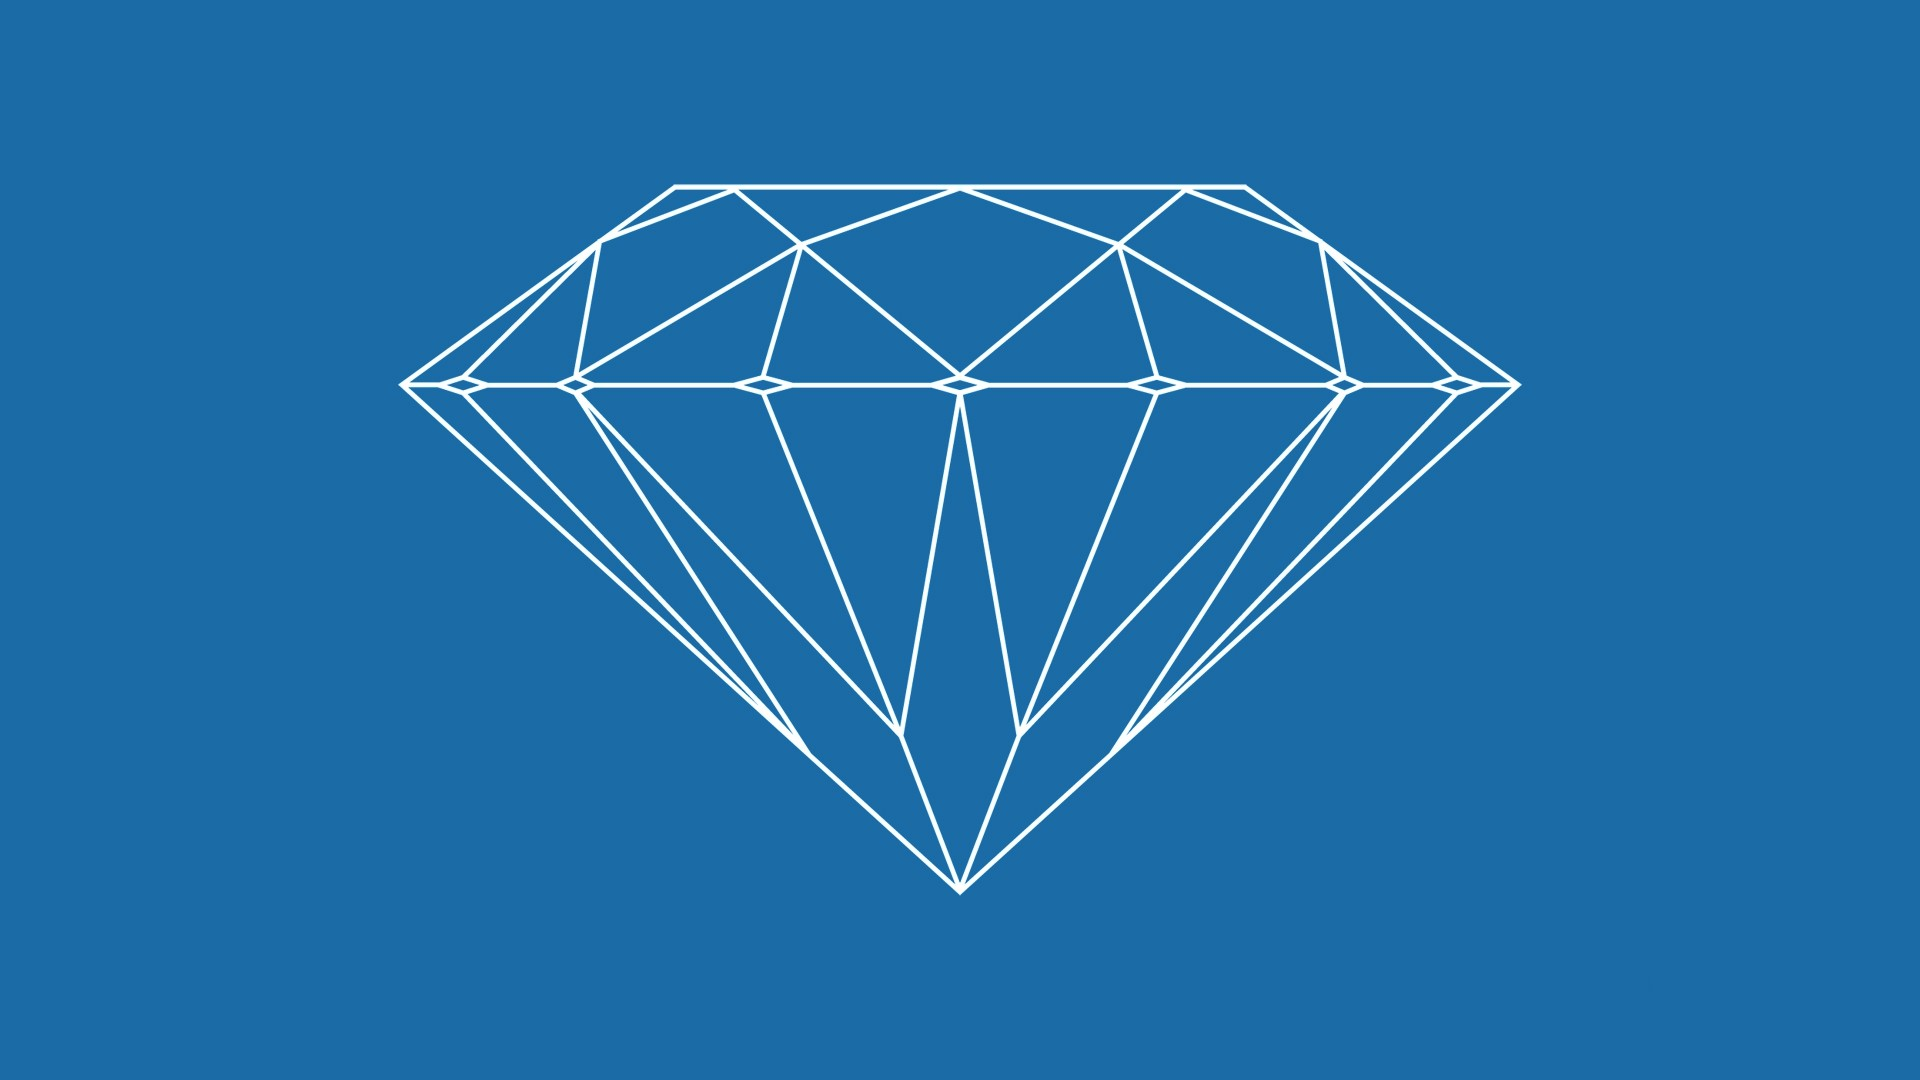 hd diamond supply backgrounds hd desktop wallpapers amazing images cool  background photos download free images colourful